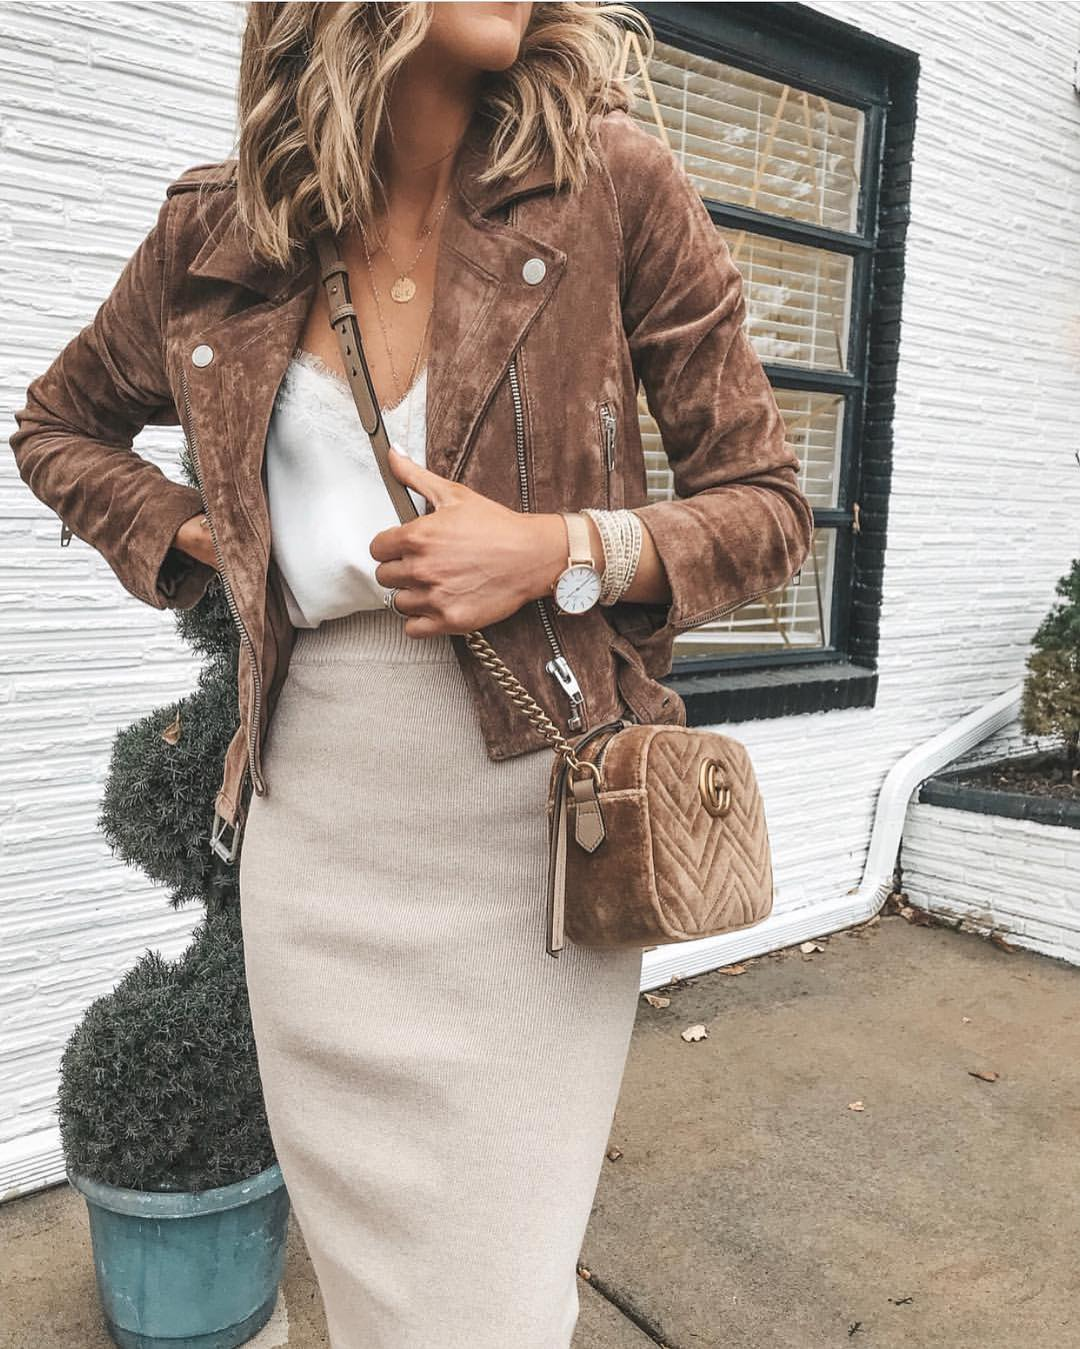 Brown Suede Biker Jacket And Knitted Cream-White Pencil Skirt Combo 2021